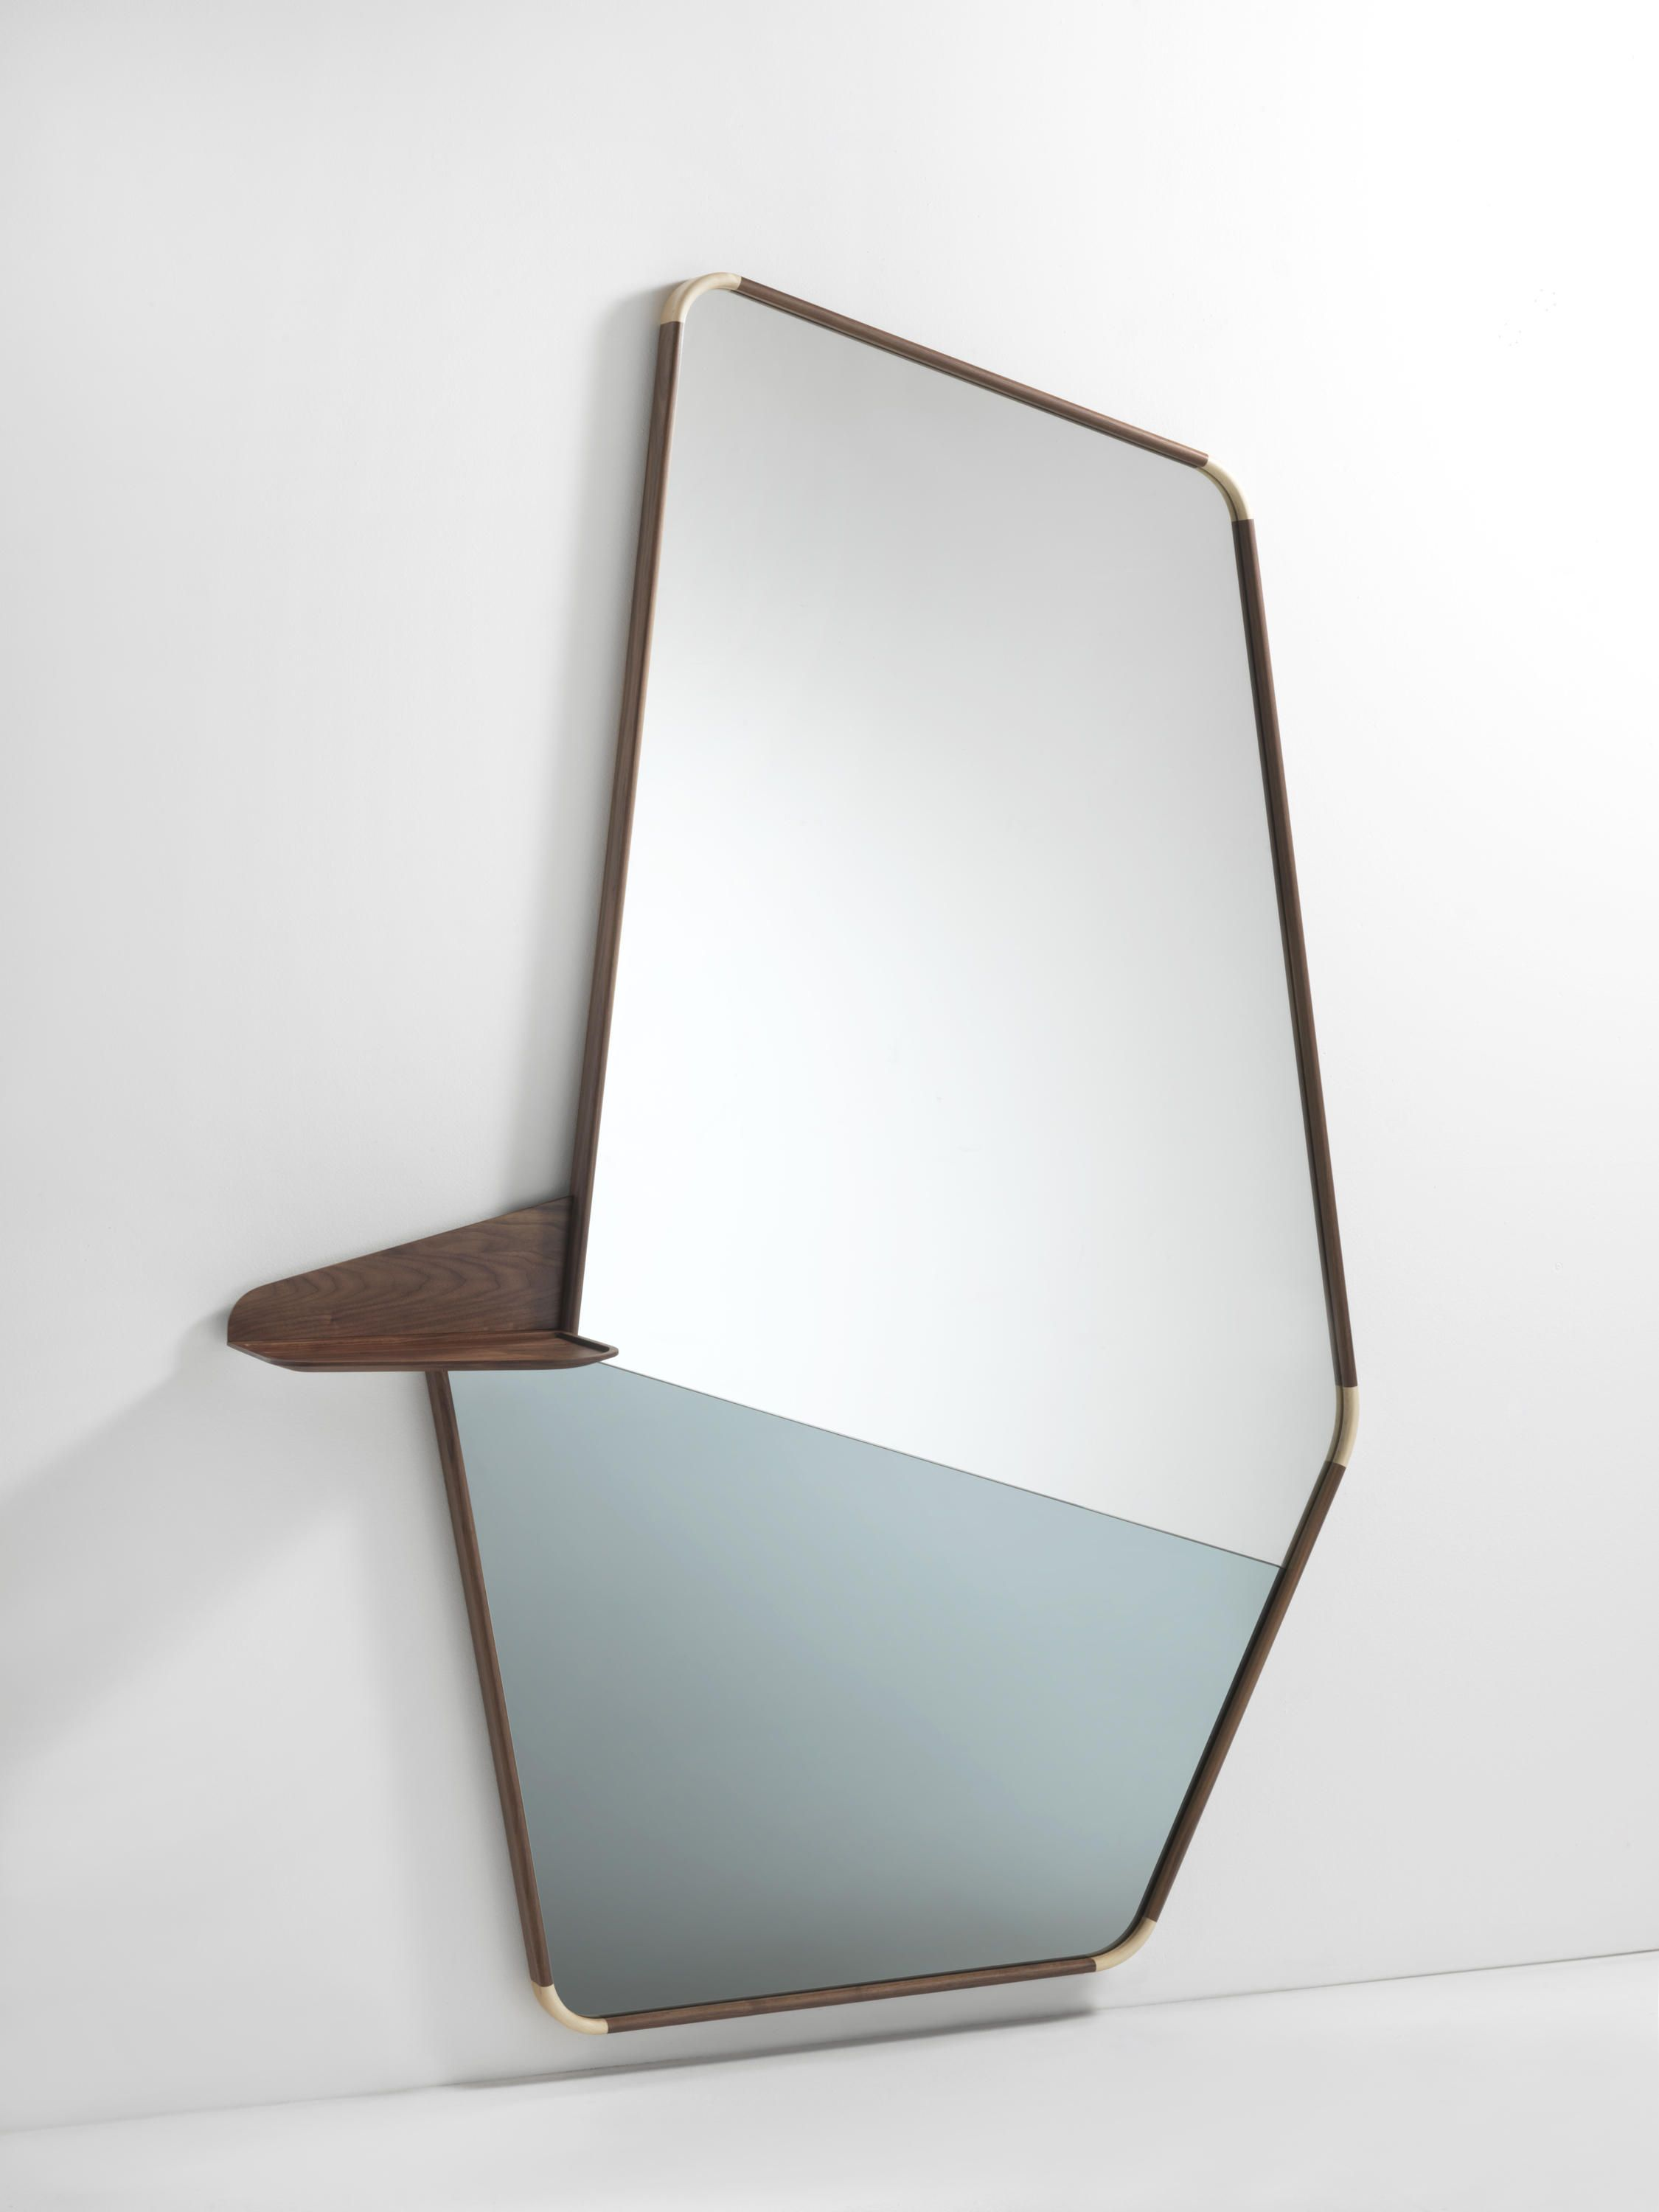 Multifunctional items and large mirrors are created to personalize the  interiors, like the Ops mirror